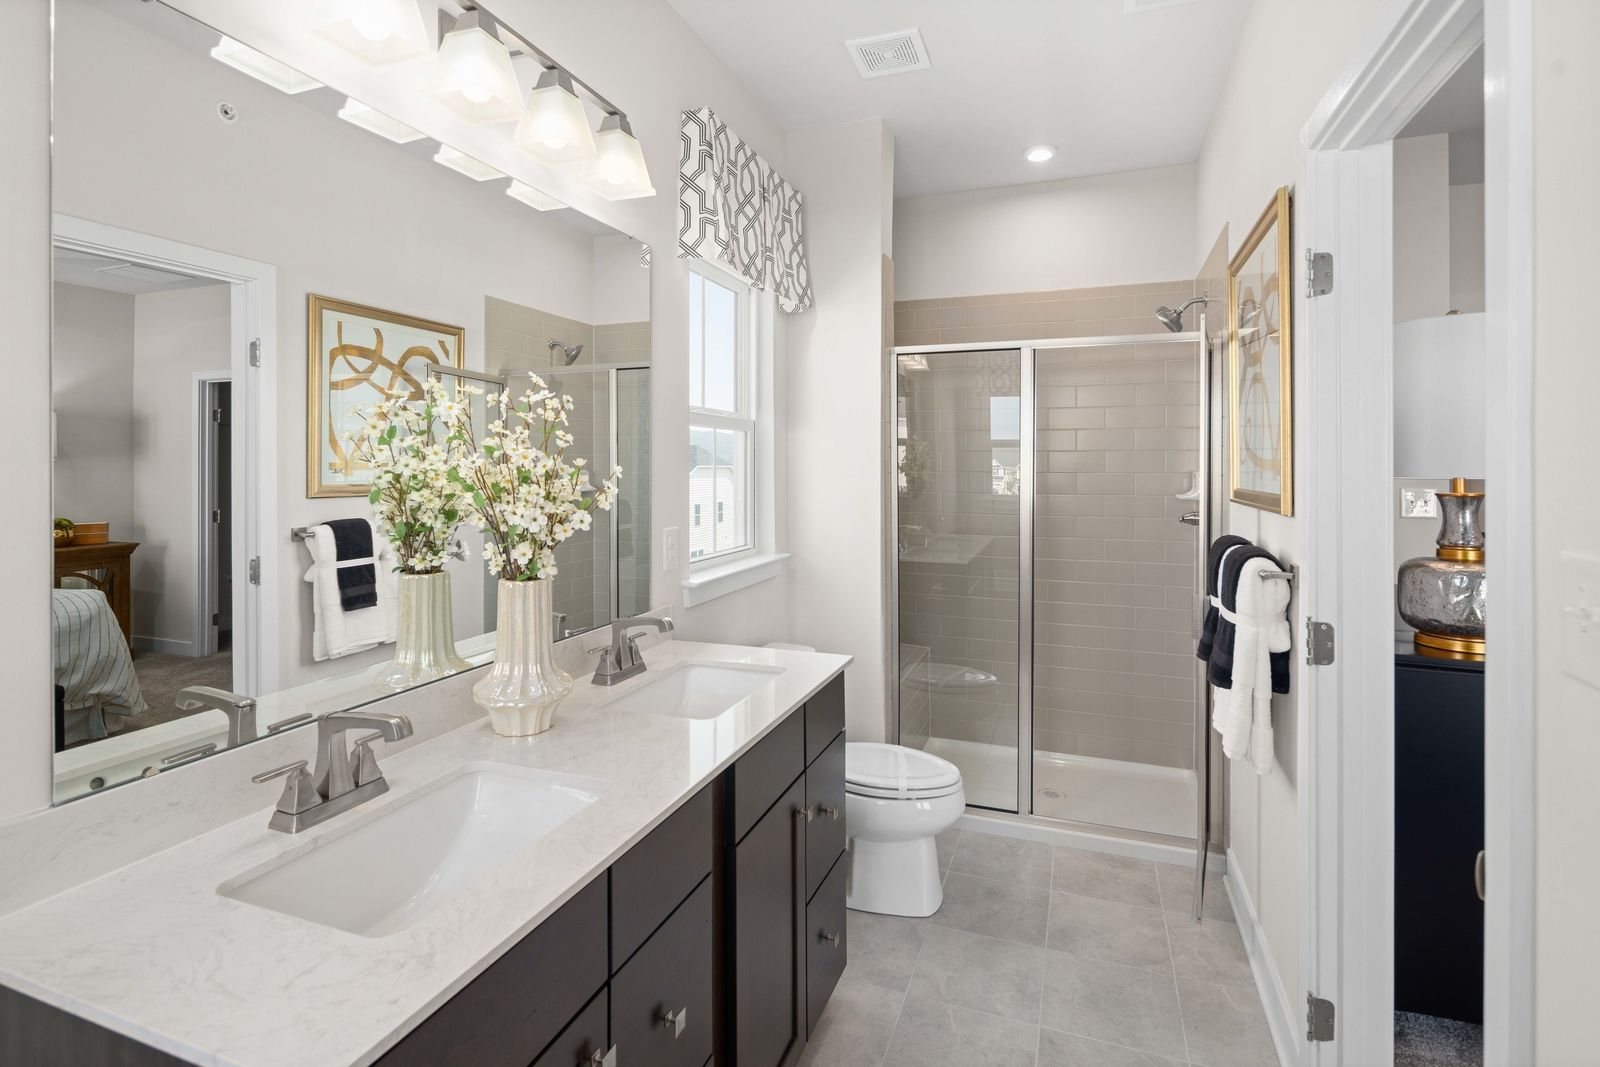 Bathroom featured in the Strauss By Ryan Homes in Charlotte, NC